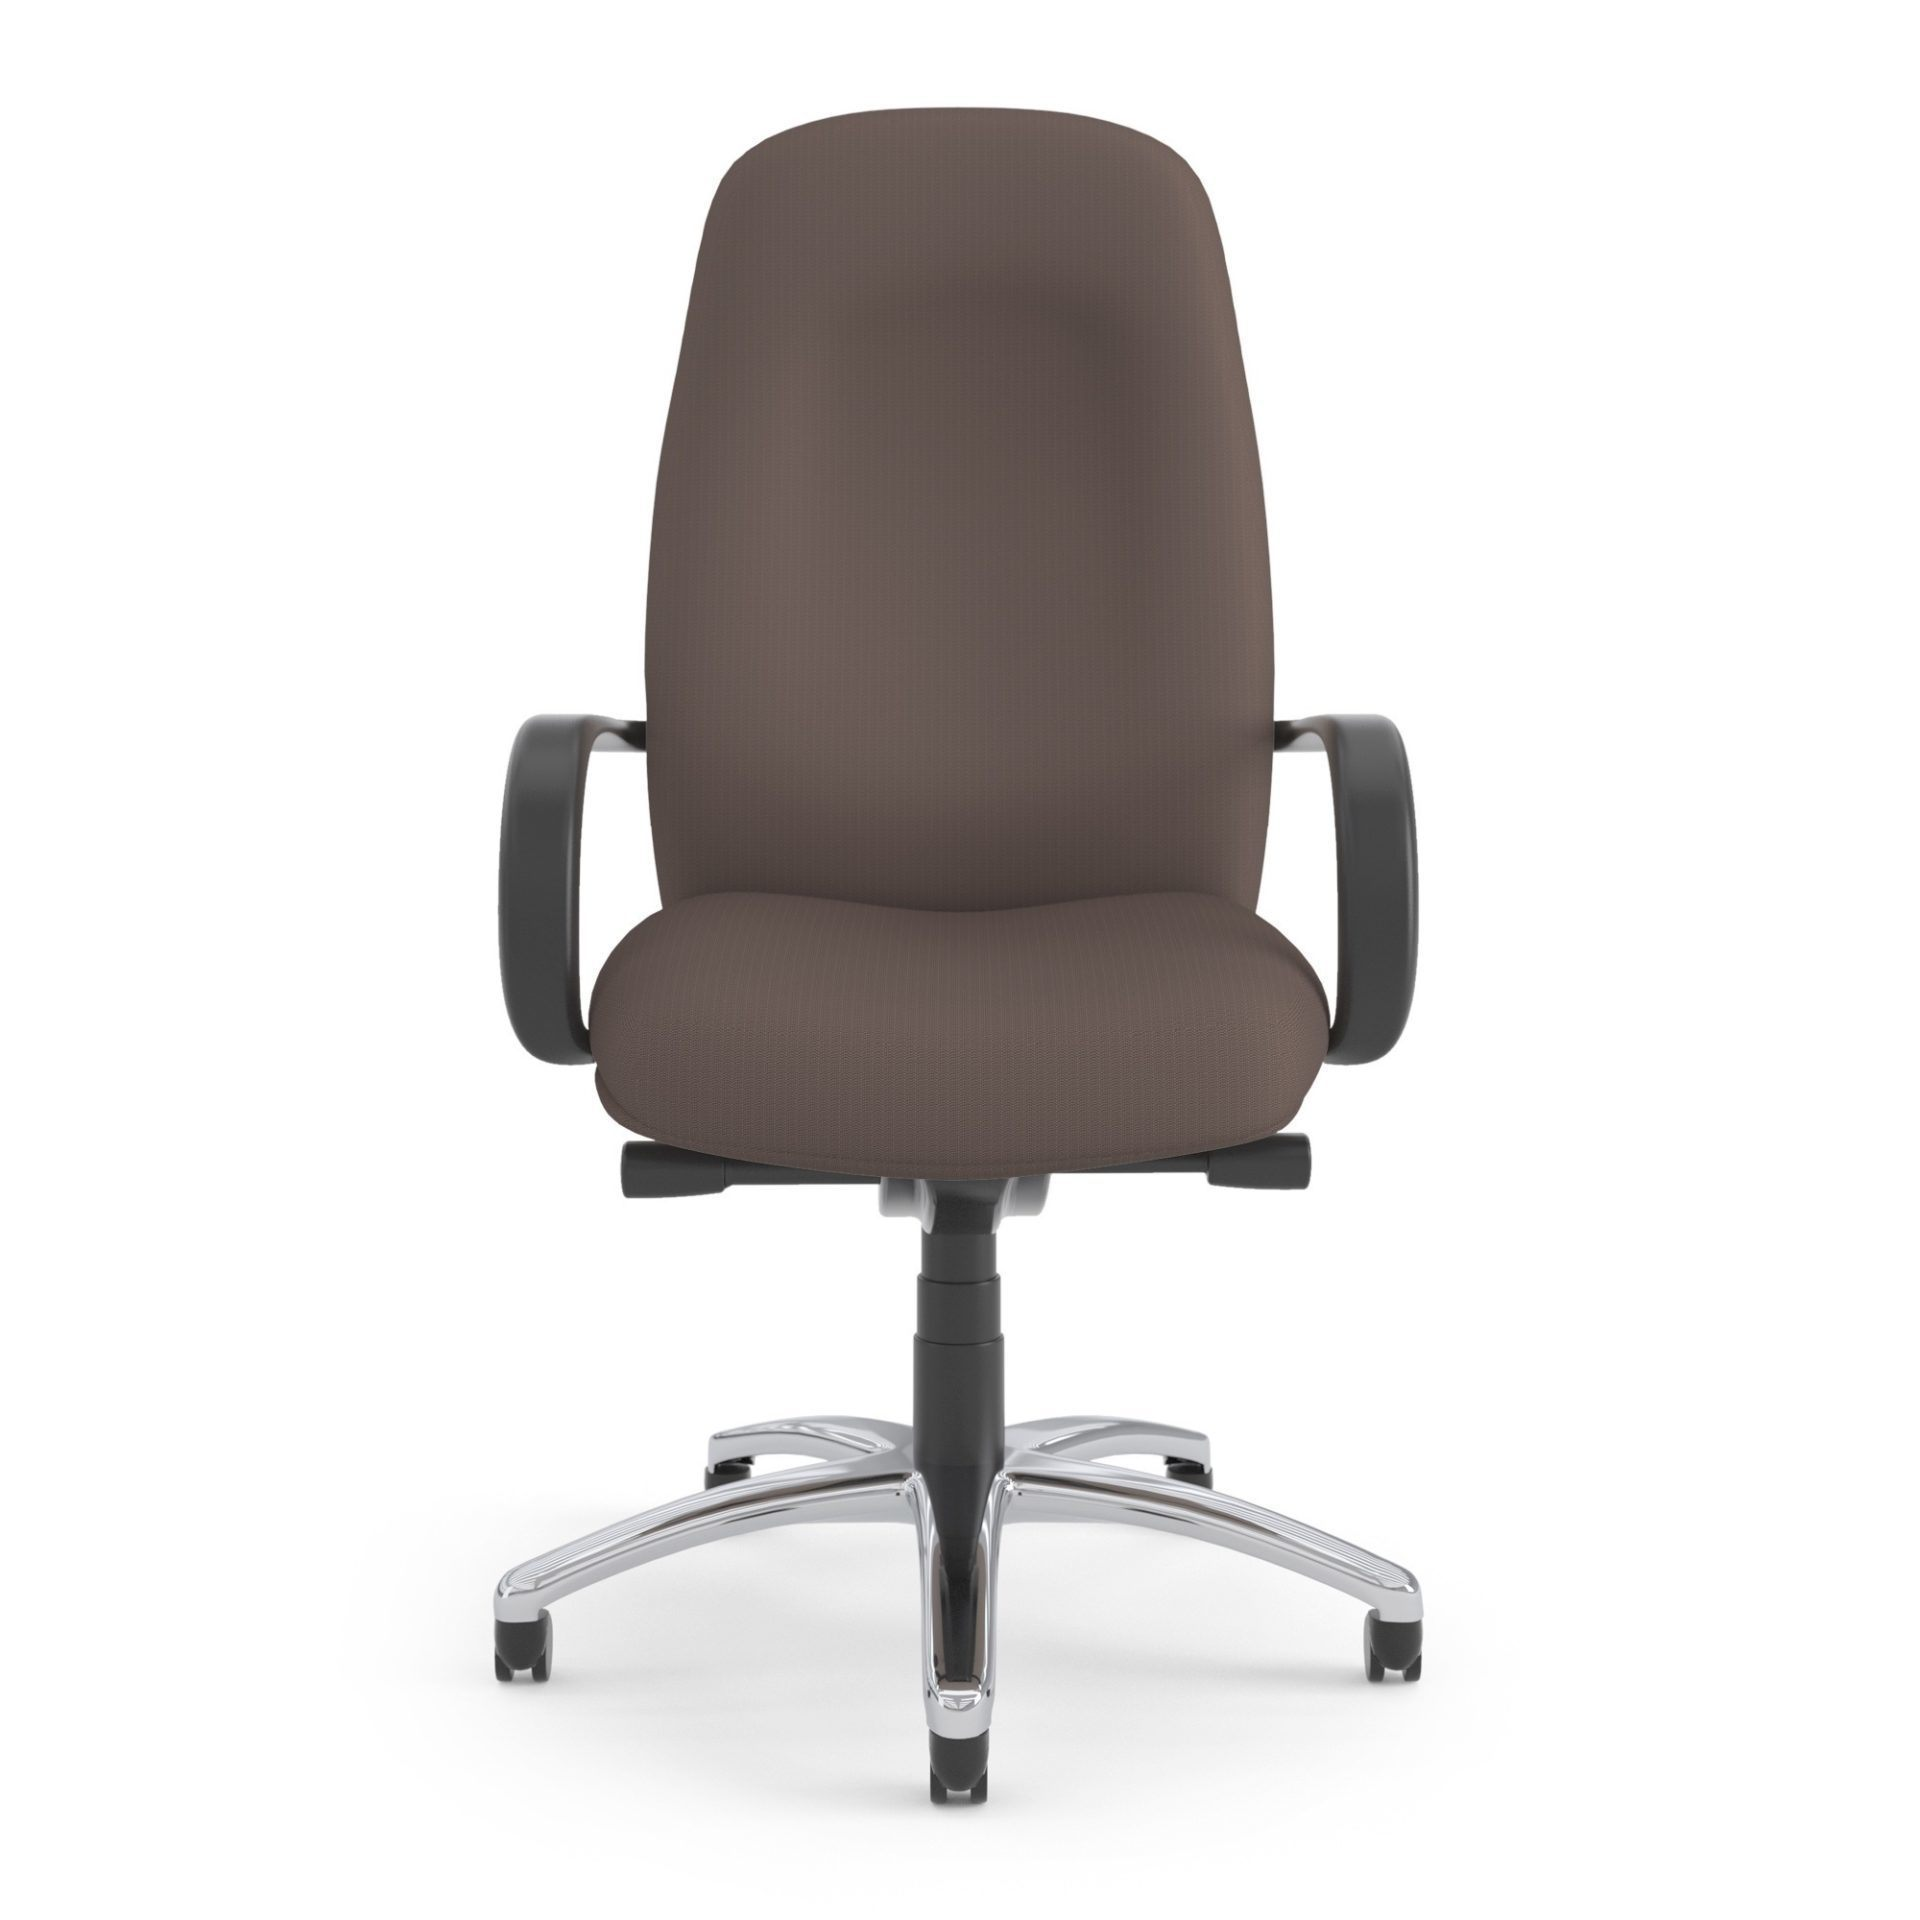 SitOnIt TR2 Executive/Conference Chair